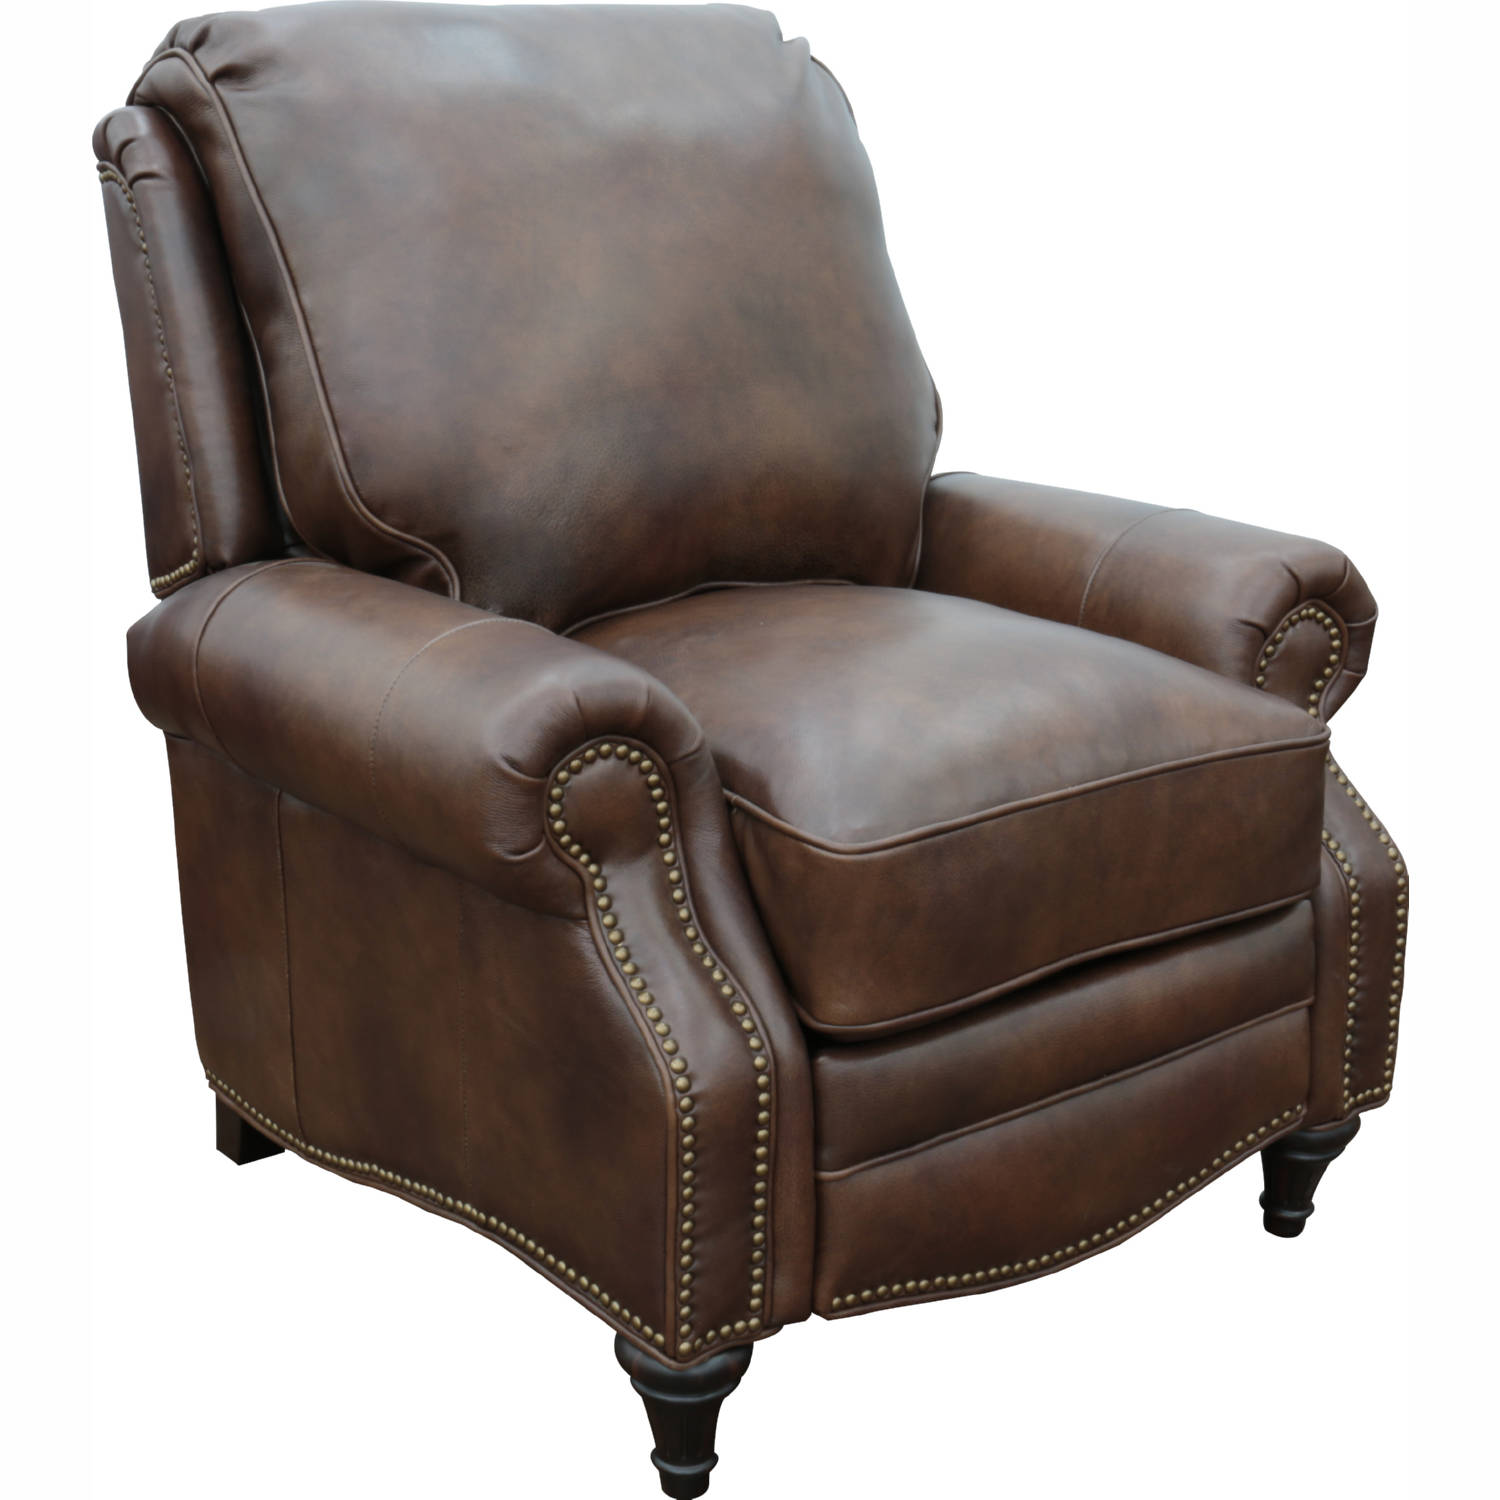 Superb Avery Recliner In Worthington Cognac Brown Leather By Barcalounger Short Links Chair Design For Home Short Linksinfo